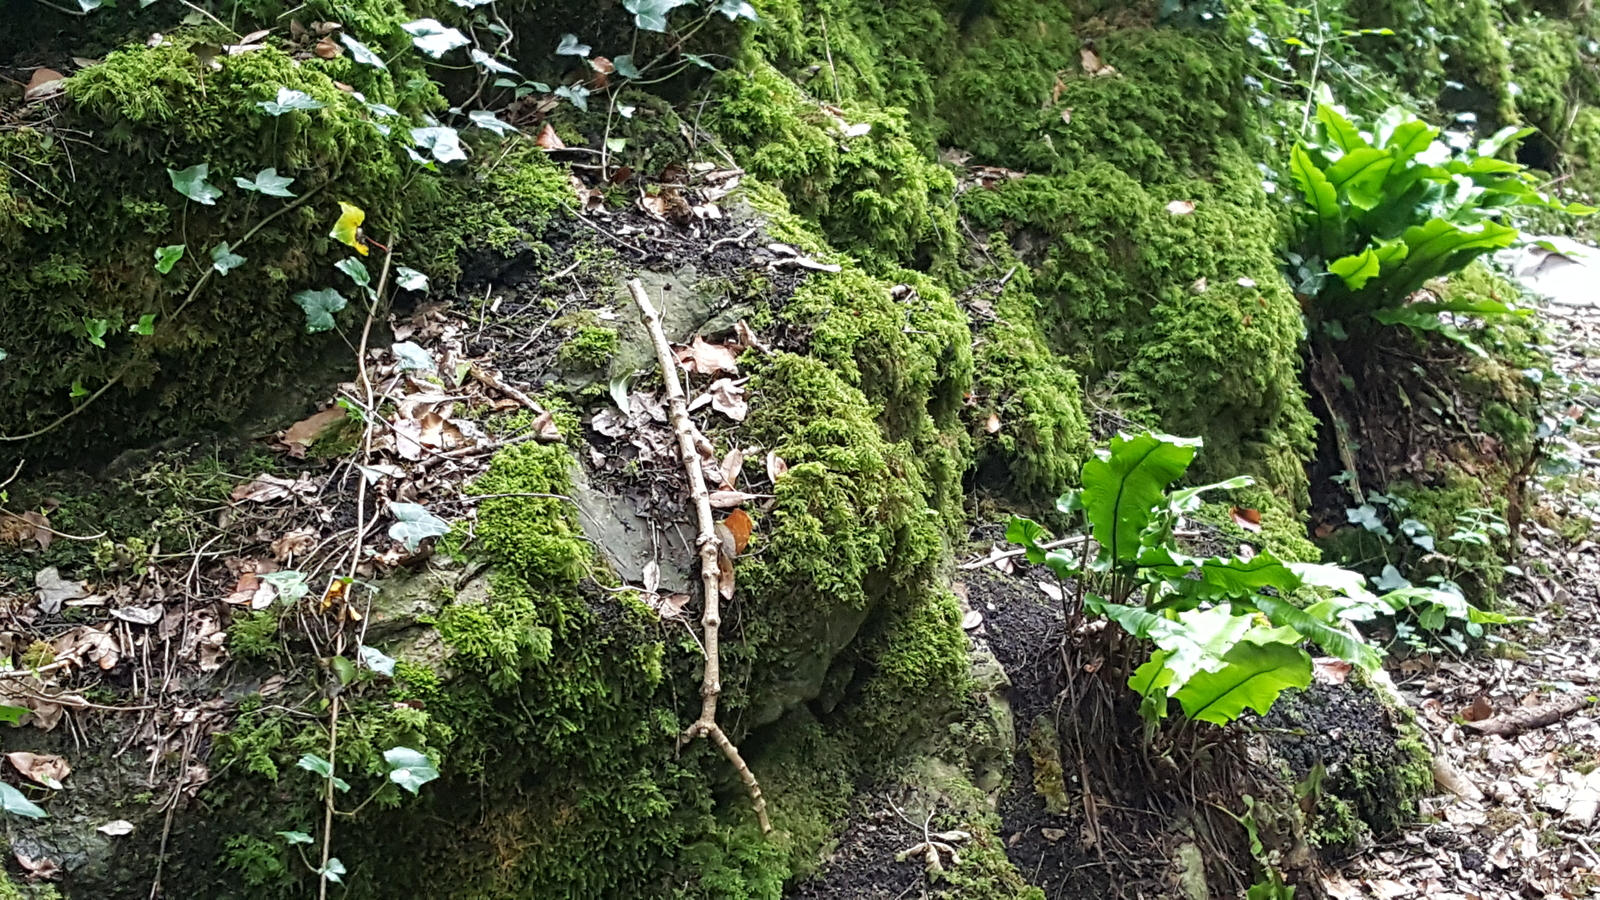 All green! Ivy, various kinds of moss and ferns growing in luscious profusion on a limestone rockface